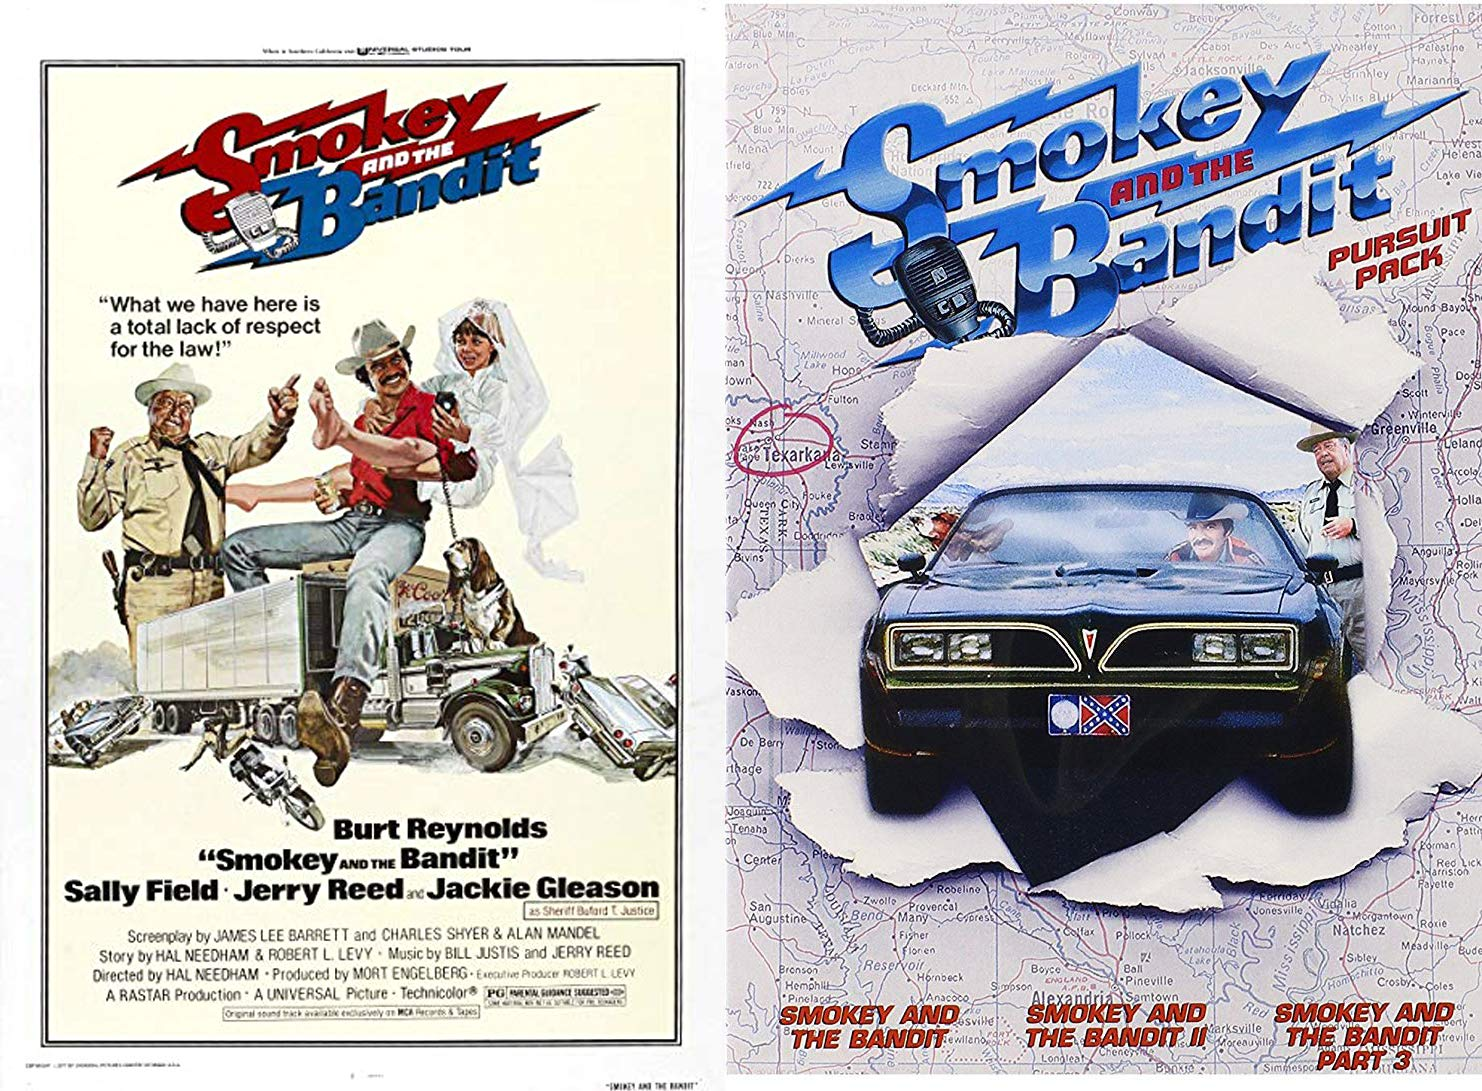 Amazon Com Lack Of Respect For The Law Collection Smokey The Bandit Part 1 2 3 Pursuit Pack Original Fabric Movie Poster Exclusive Feature Dvd 3 Comedy Favorites Set Burt Reynolds Jackie Gleason